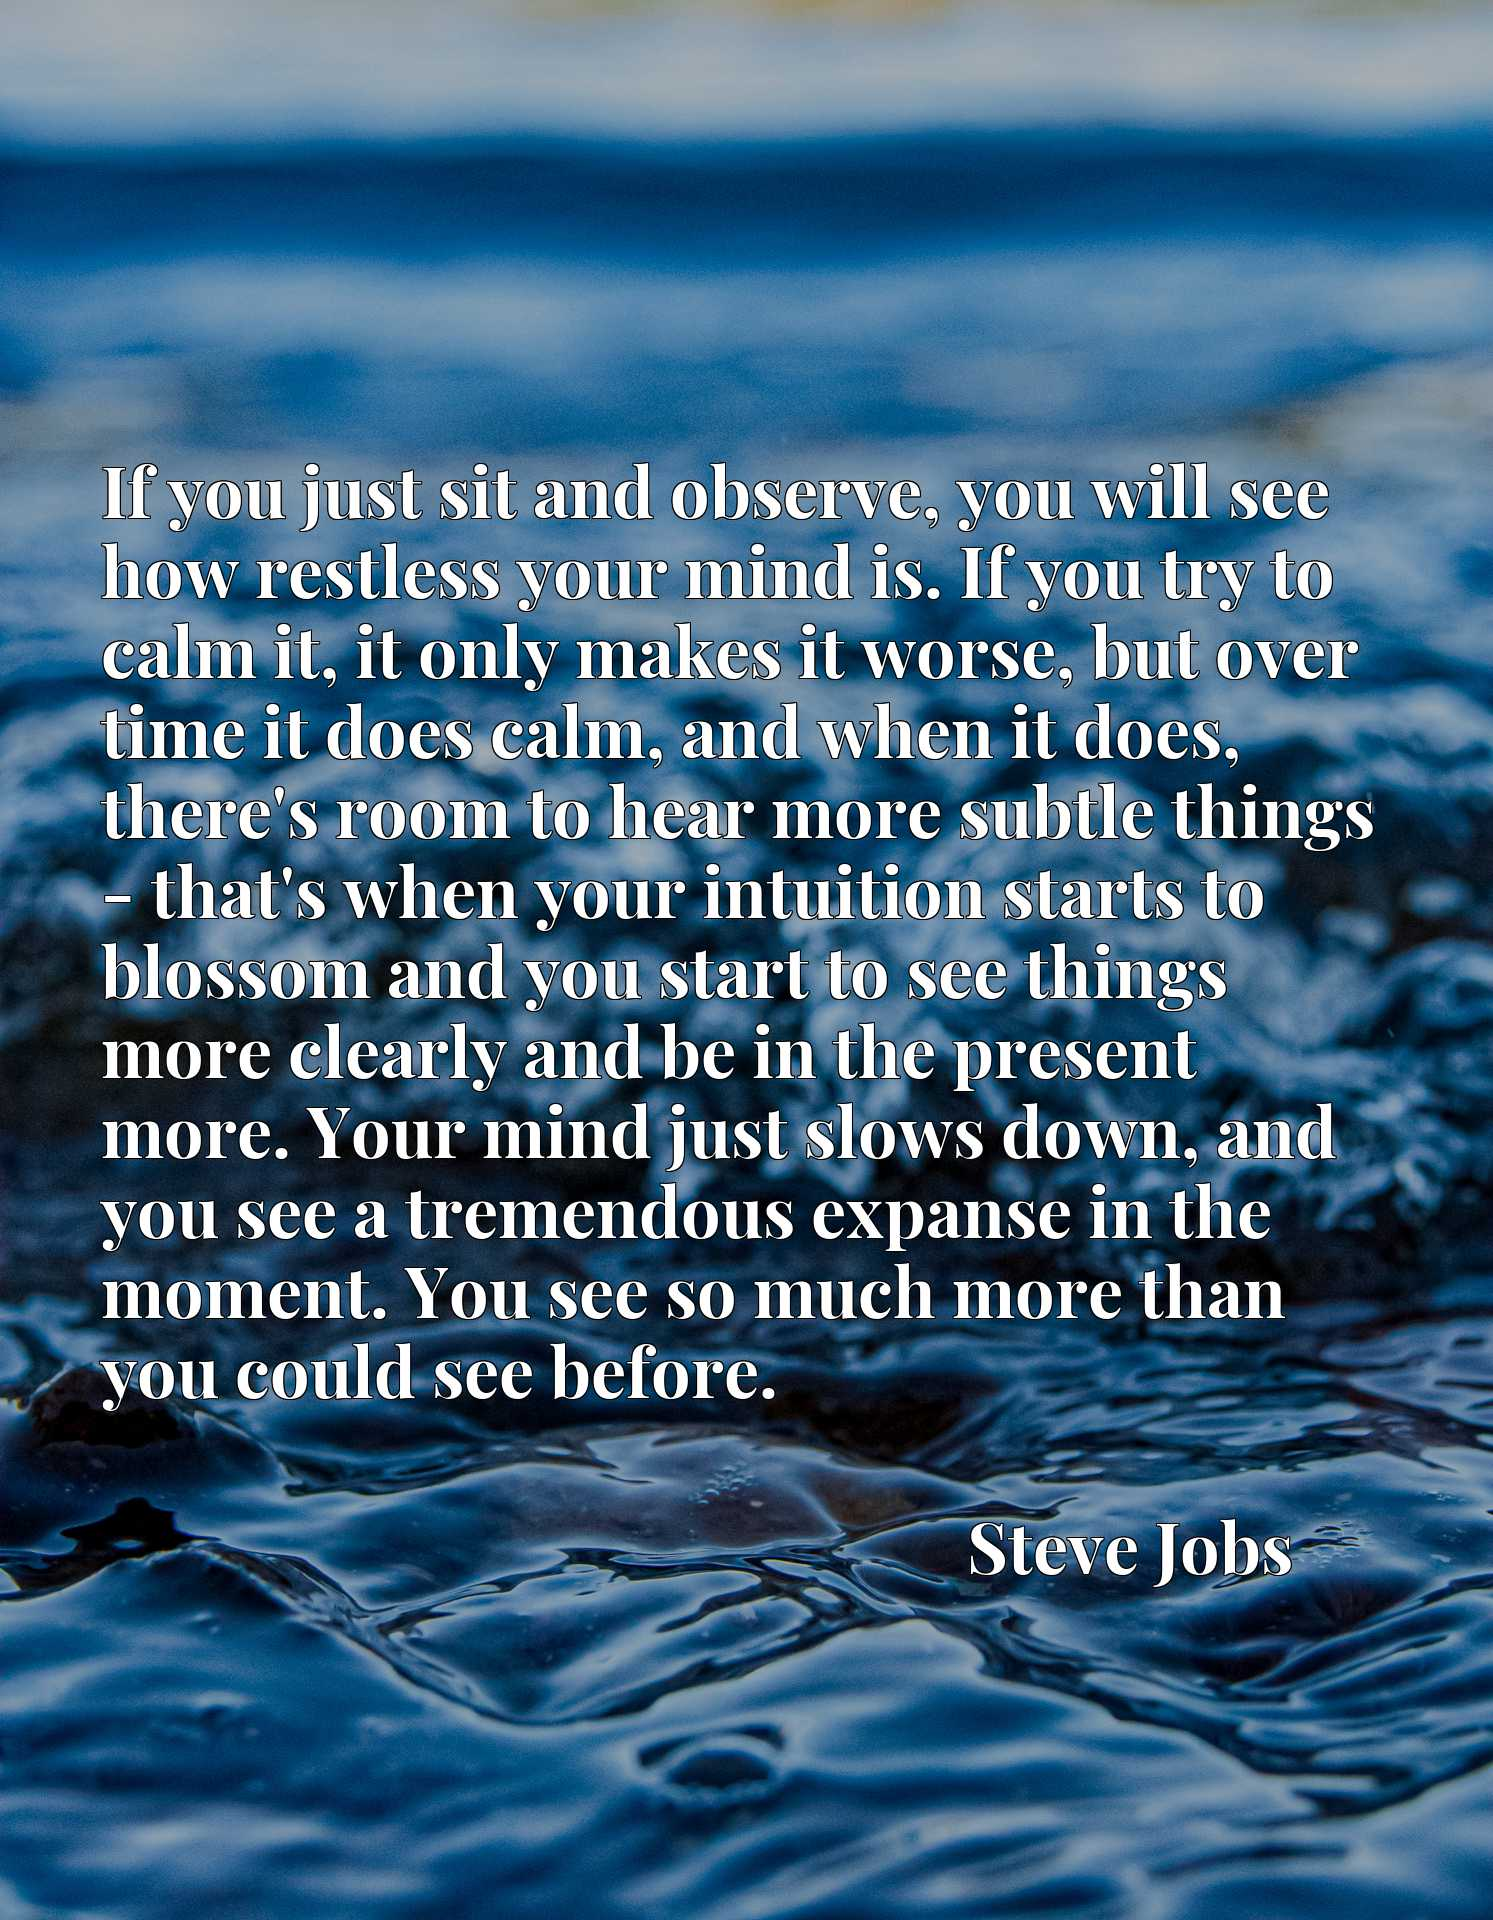 If you just sit and observe, you will see how restless your mind is. If you try to calm it, it only makes it worse, but over time it does calm, and when it does, there's room to hear more subtle things - that's when your intuition starts to blossom and you start to see things more clearly and be in the present more. Your mind just slows down, and you see a tremendous expanse in the moment. You see so much more than you could see before.